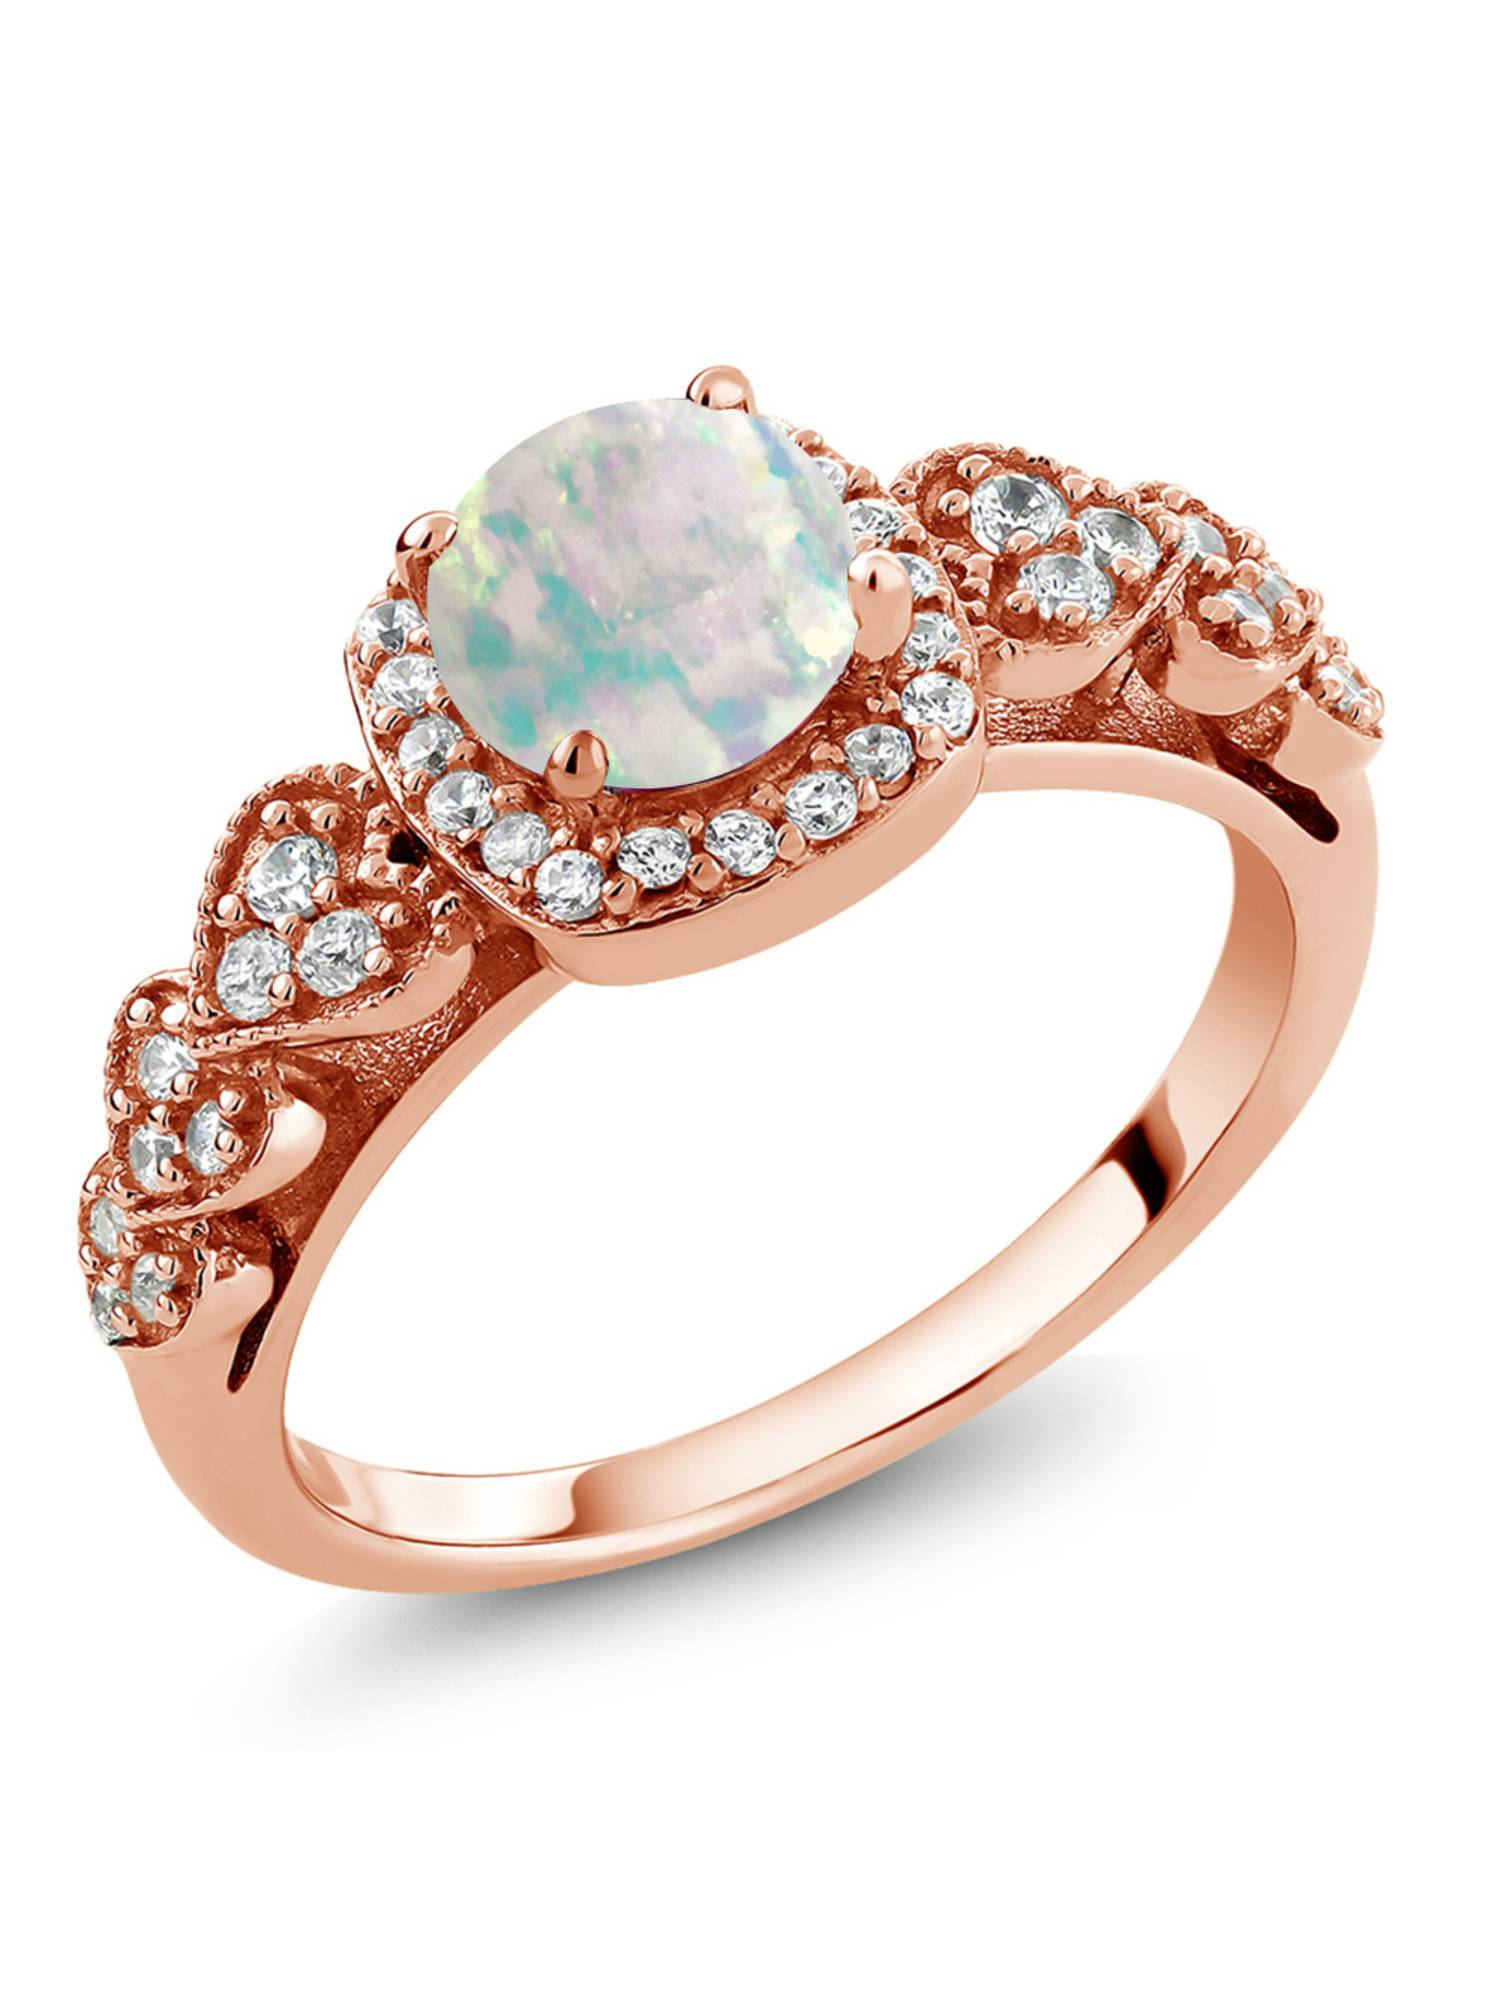 0.62 Ct Round Cabochon White Simulated Opal 18K Rose Gold Plated Silver Ring by